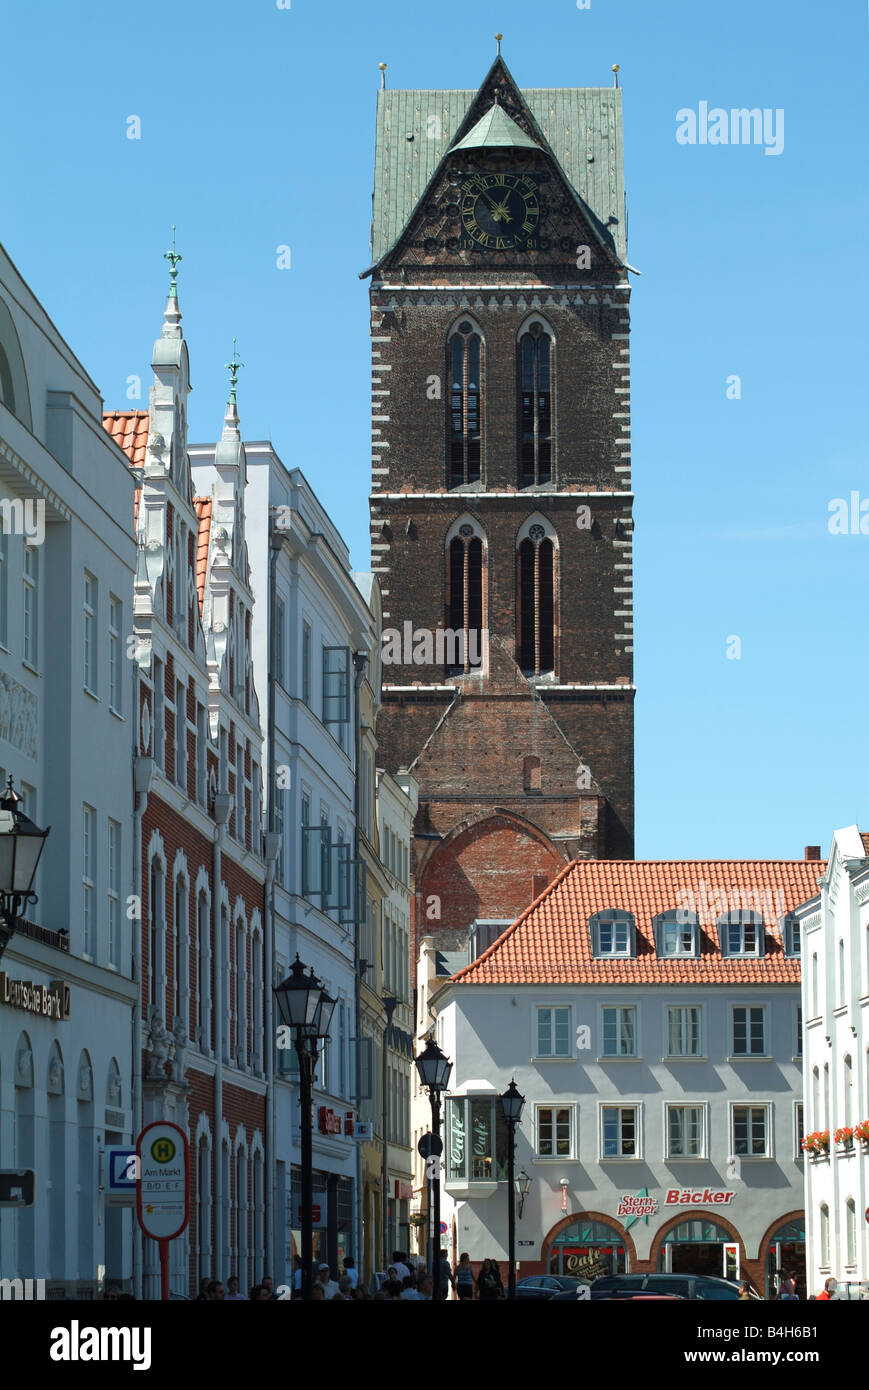 Church and houses in town - Stock Image